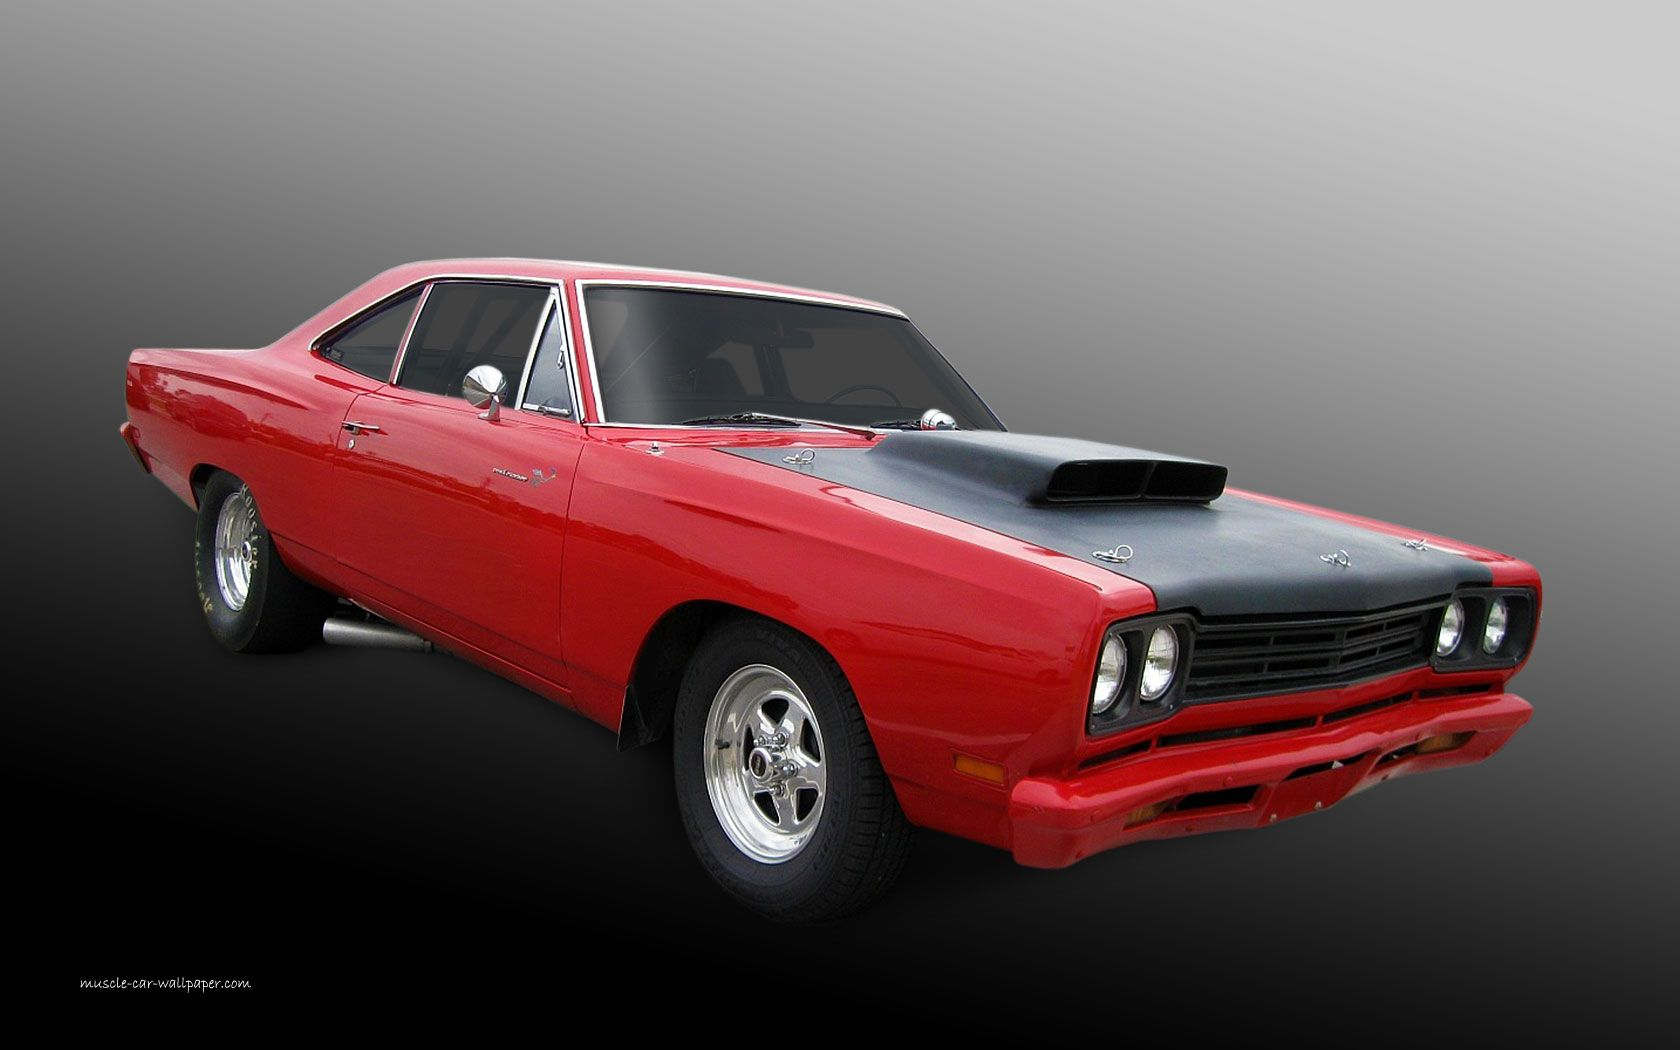 1680x1050 - Plymouth Road Runner Wallpapers 22